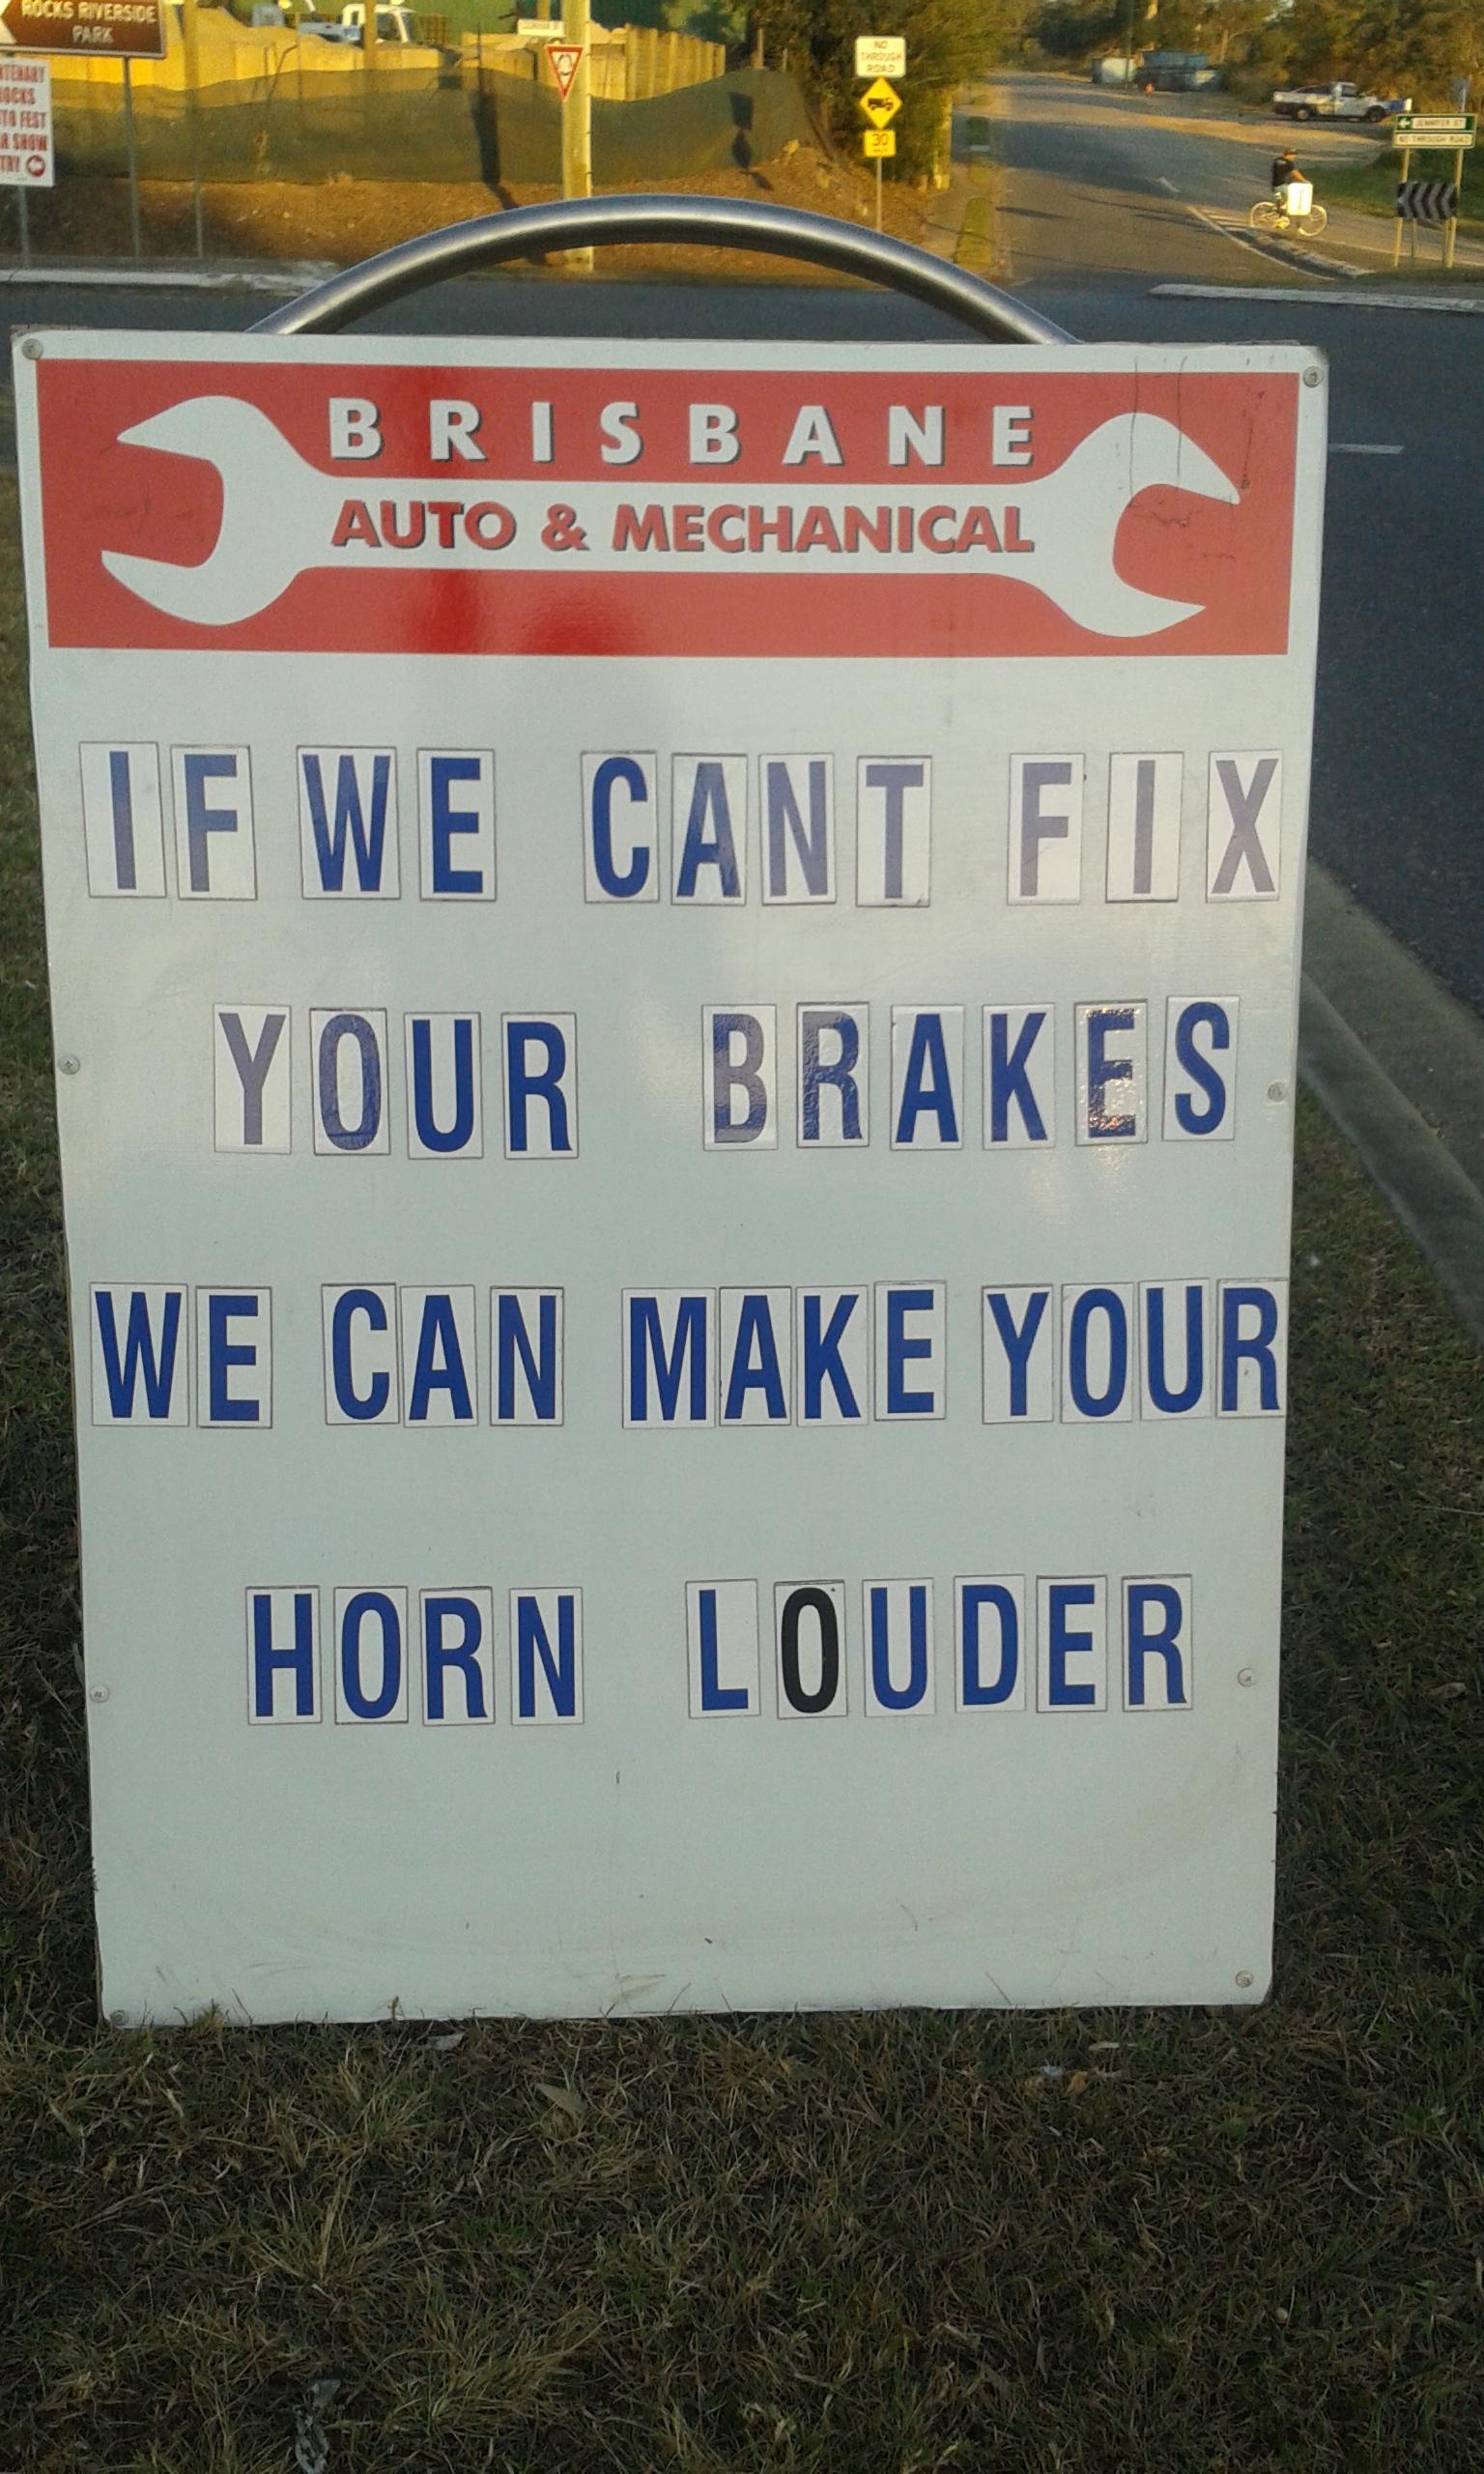 Mechanic has a solution if he can't fix your brakes.